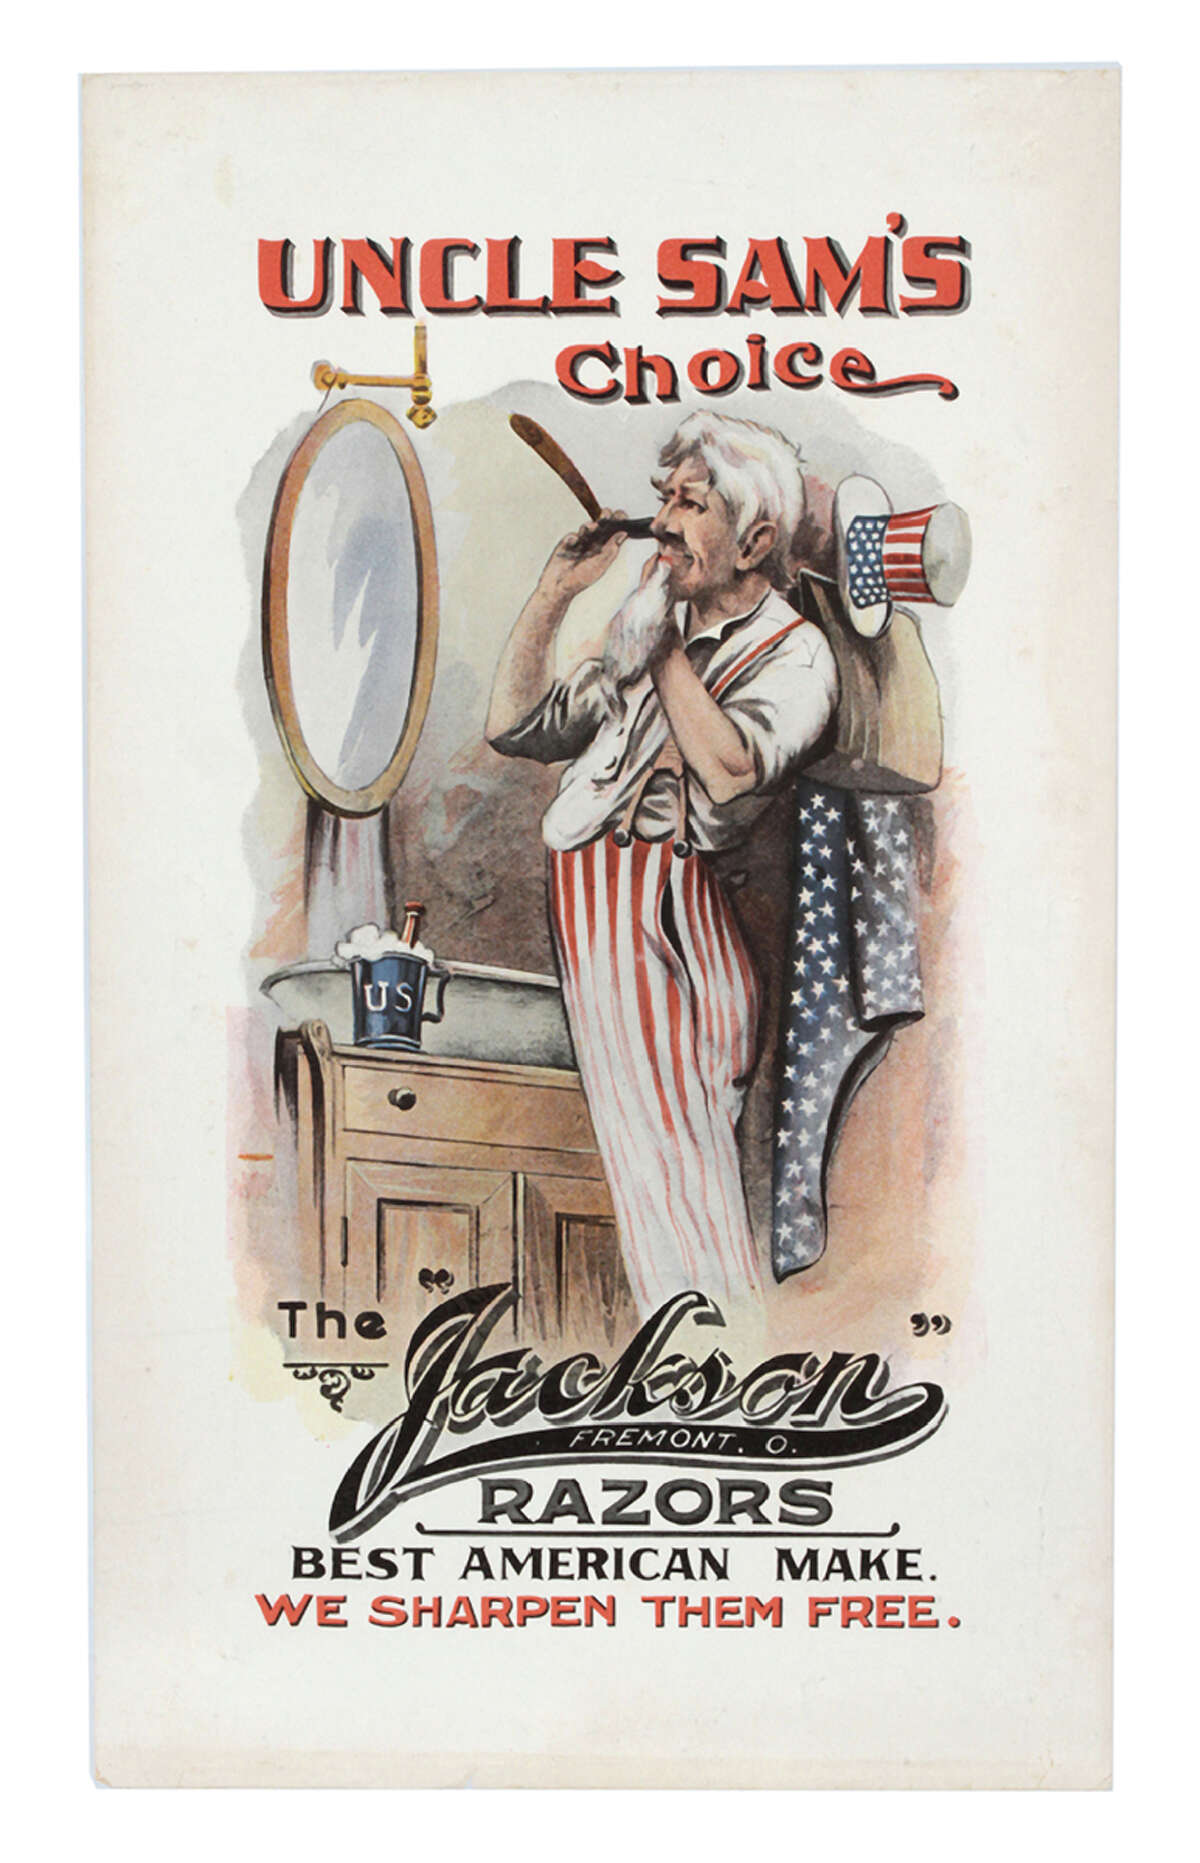 The Uncle Sam image not only represented the United States but was also used to endorse products. This hundred-year-old lithographed sign praised the Jackson razor that was used to shave Uncle Samís beard. William Morford Auctions in Cazenovia, N.Y., sold this sign for $1,925 last fall.